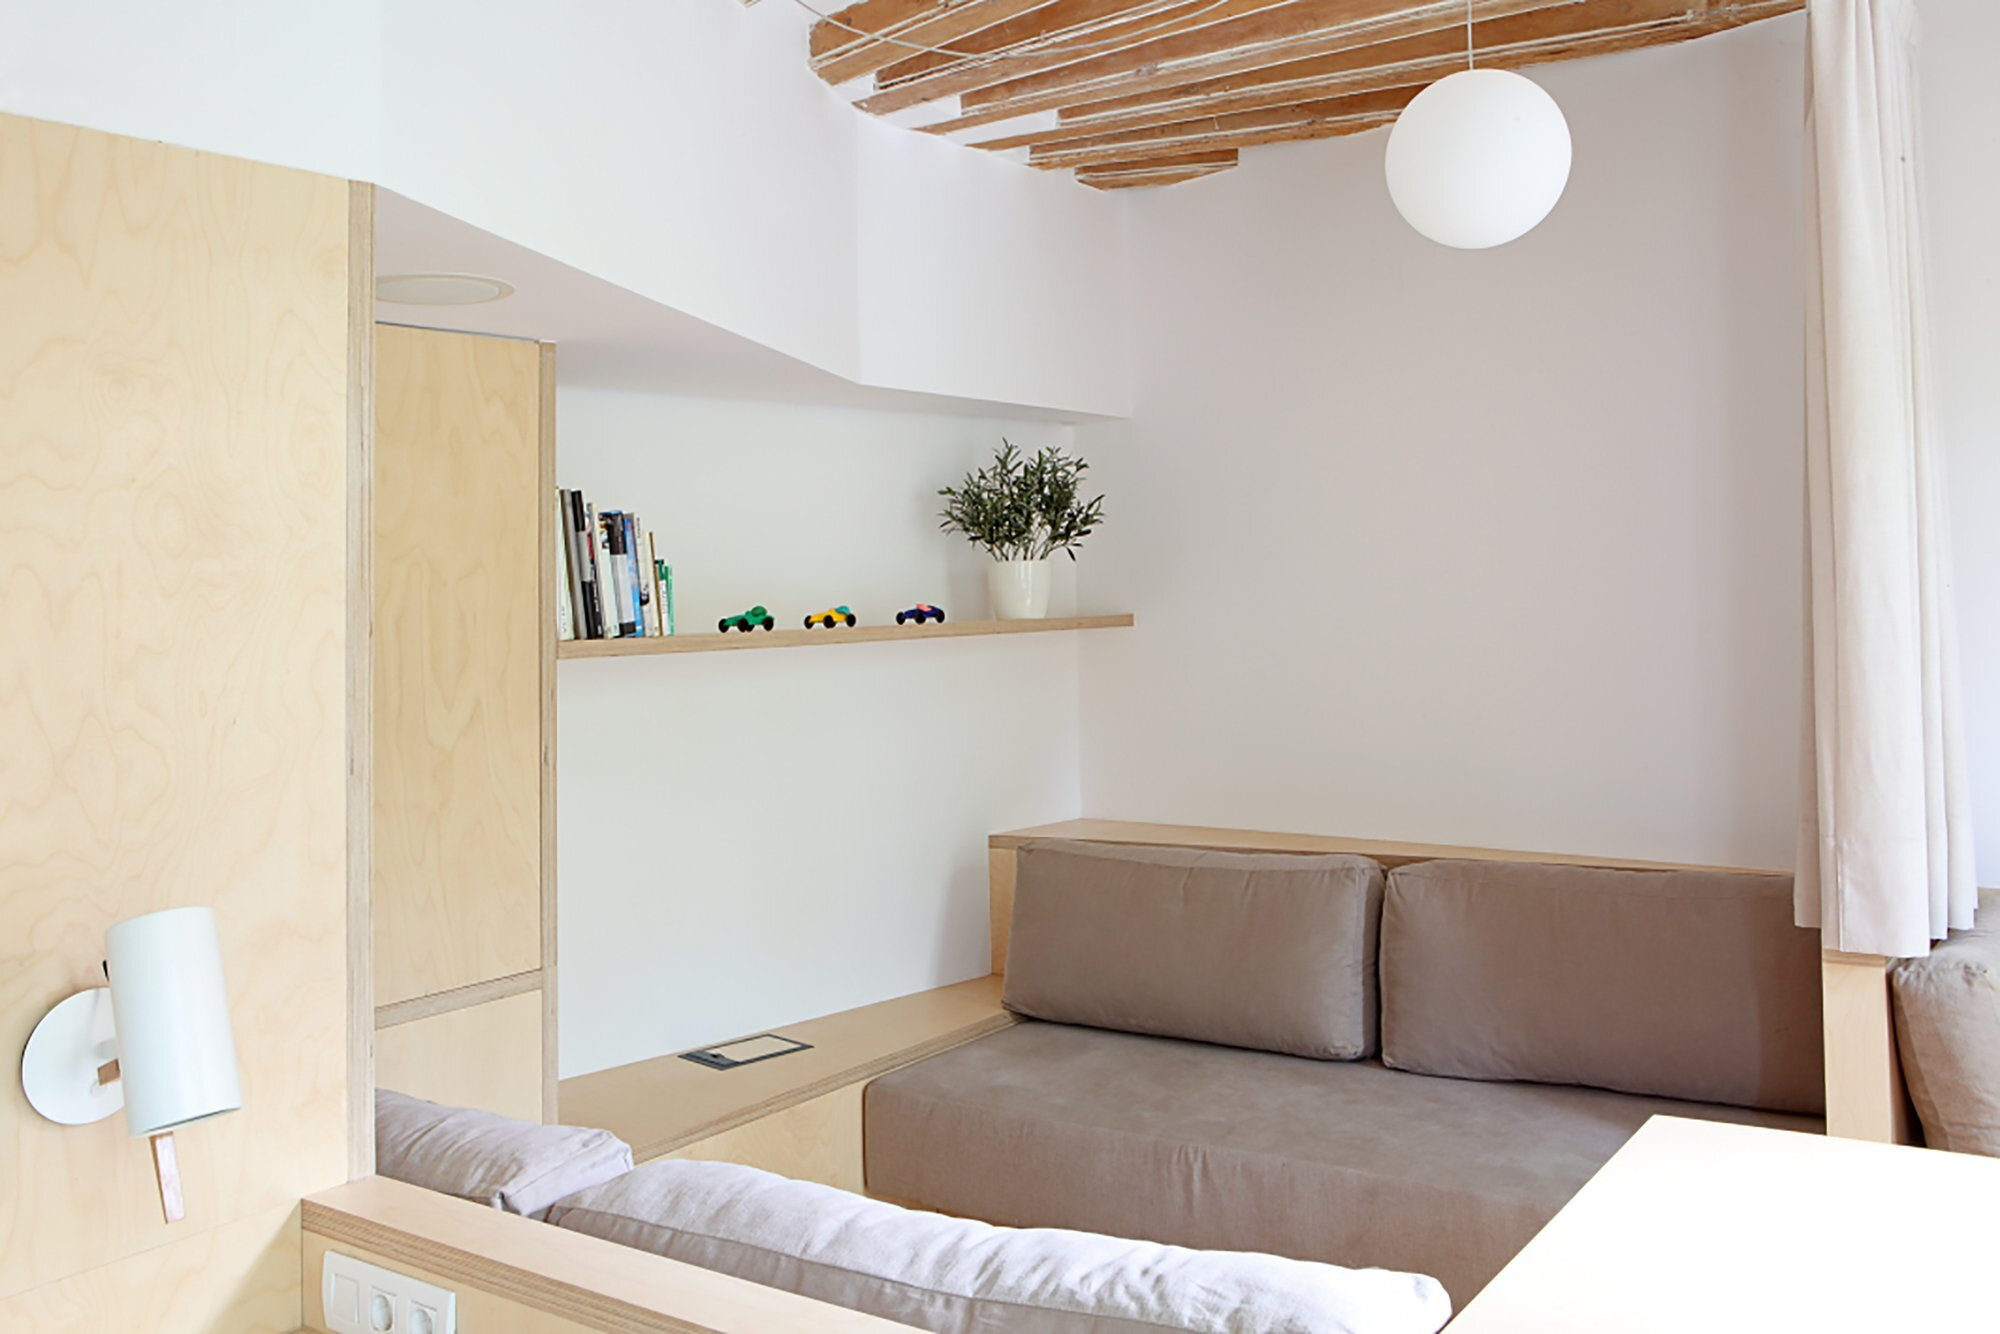 Apartment Pujades11 - Small Apartment - Miel Arquitectos + Studio P10 - Spain - Living Room - Humble Homes